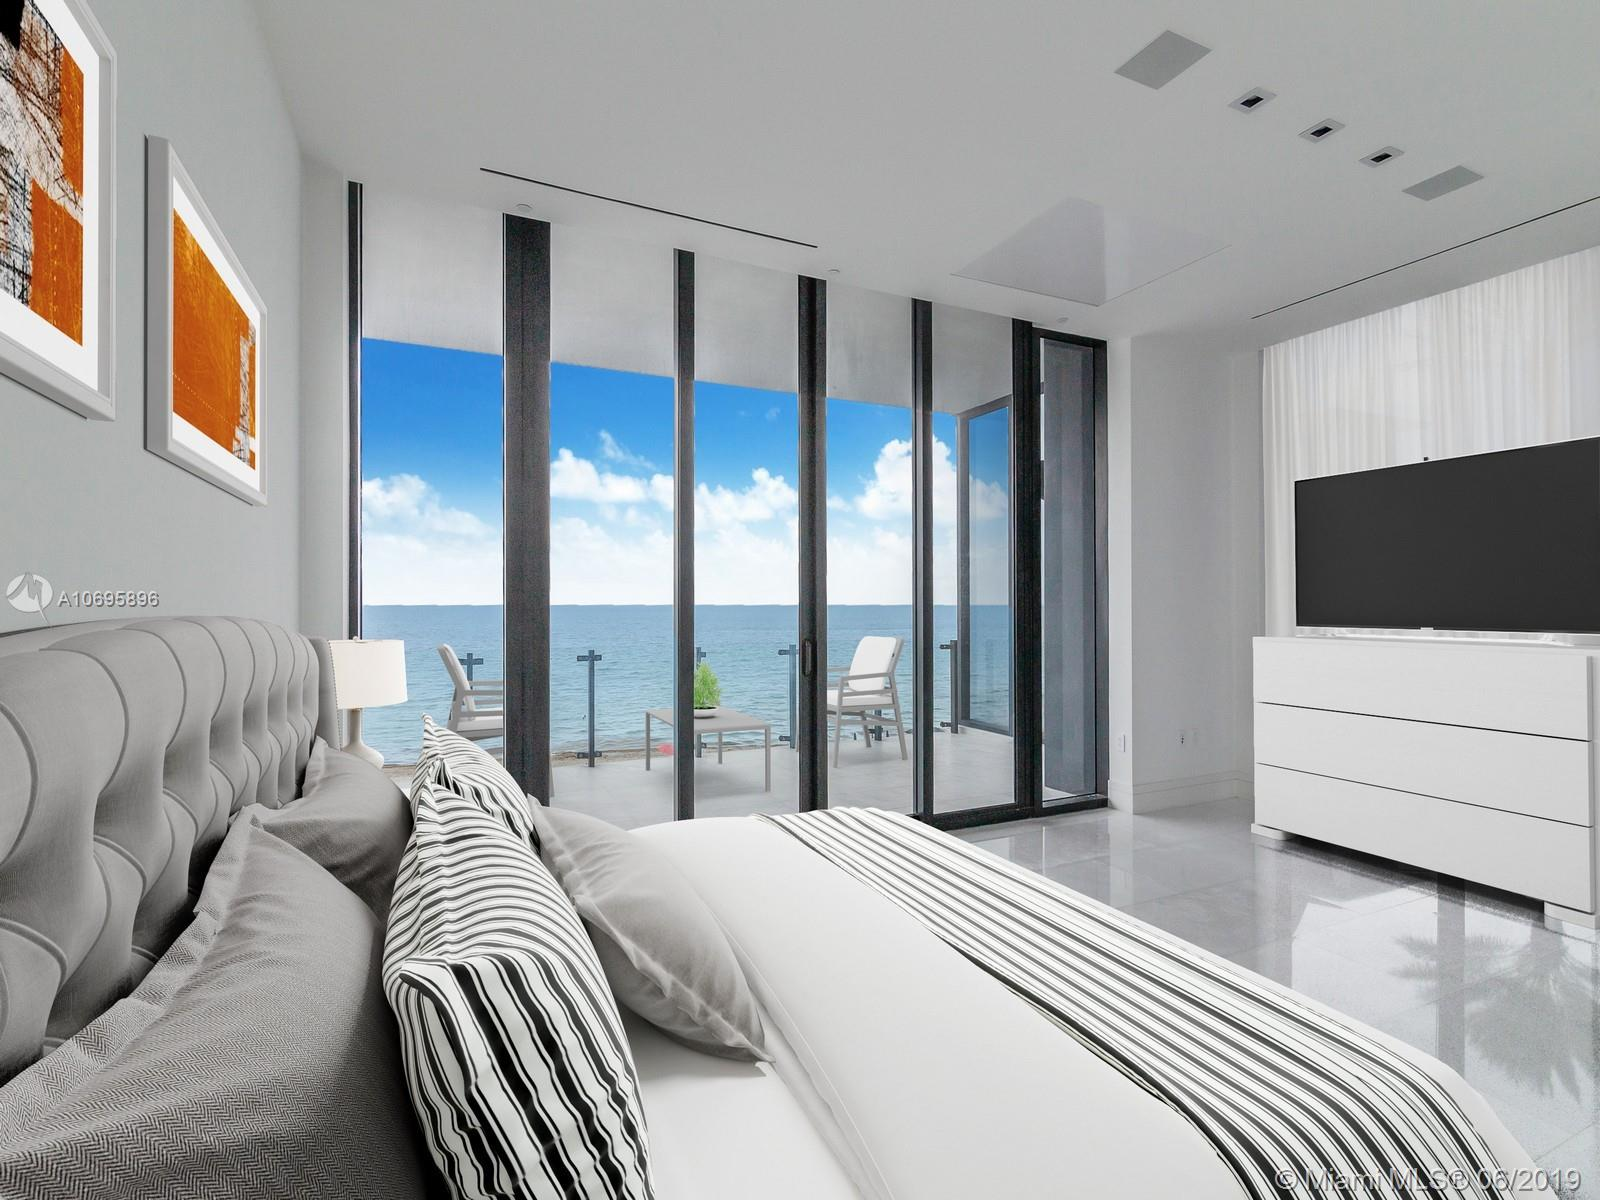 Fabulous ocean views at exclusive MUSE residence. Highlights include private ocean view ,outdoor grill, Large ultra modern sleek TV for your living space. A Large crystal clear television that disappears into your master bath mirror. A biometric safe in the master suite that opens for you and only you. intelligent camera system to enhance security at entry -Sub-Zero dual temperature wine storage for up to 148 bottles Kitchens are accompanied by exquisite unique marble countertops and top-of-the-line SubZero/Wolf appliances taking your culinary experience to a whole new level. Smart iHome System: Each residence offers unparalleled efficiency through a cutting-edge smart home technology experience. Includes integrated audio, video, lighting, security and shades systems.